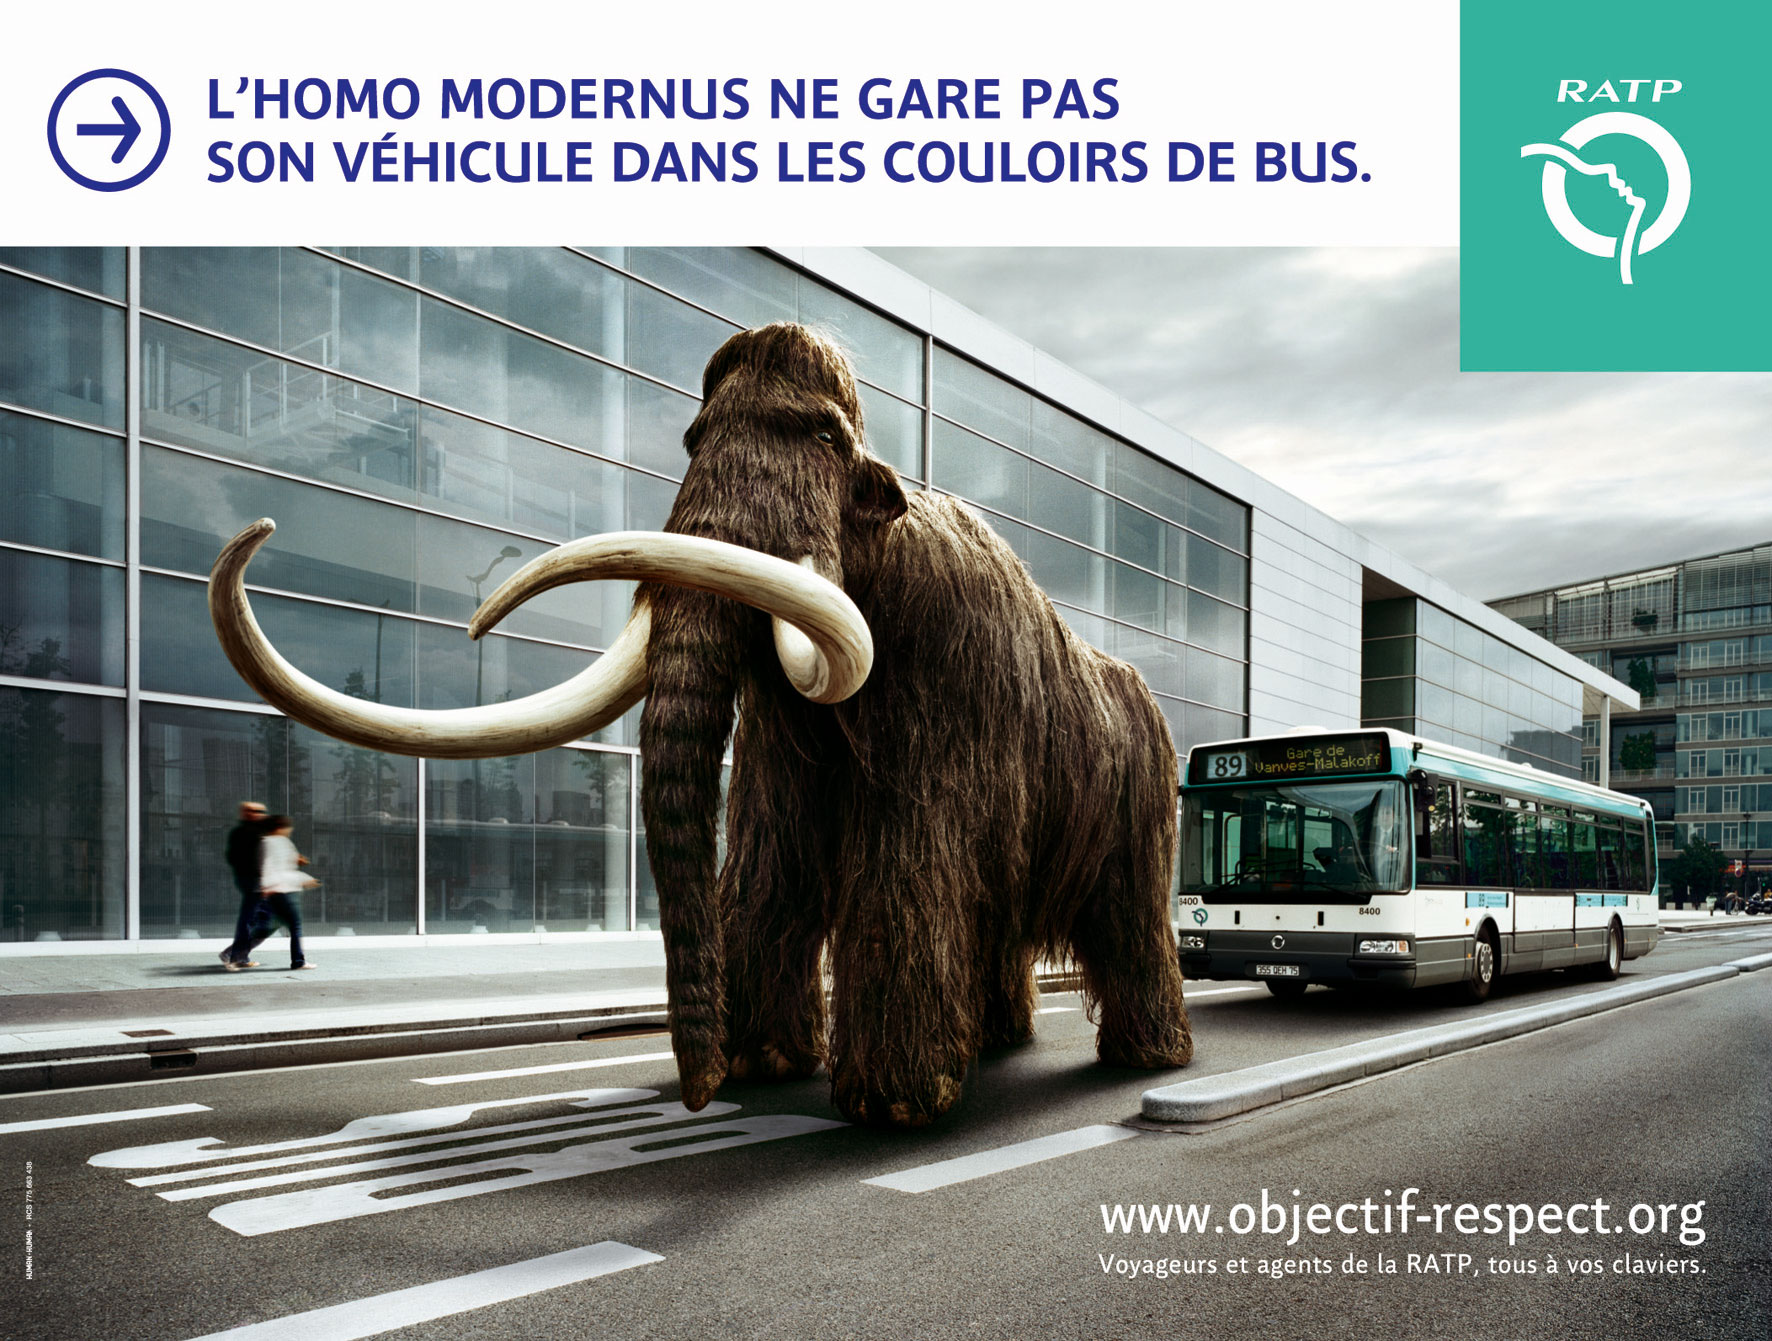 http://onechroniqueshow.com/wp-content/uploads/2013/01/MAMMOUTH-ratp.jpg